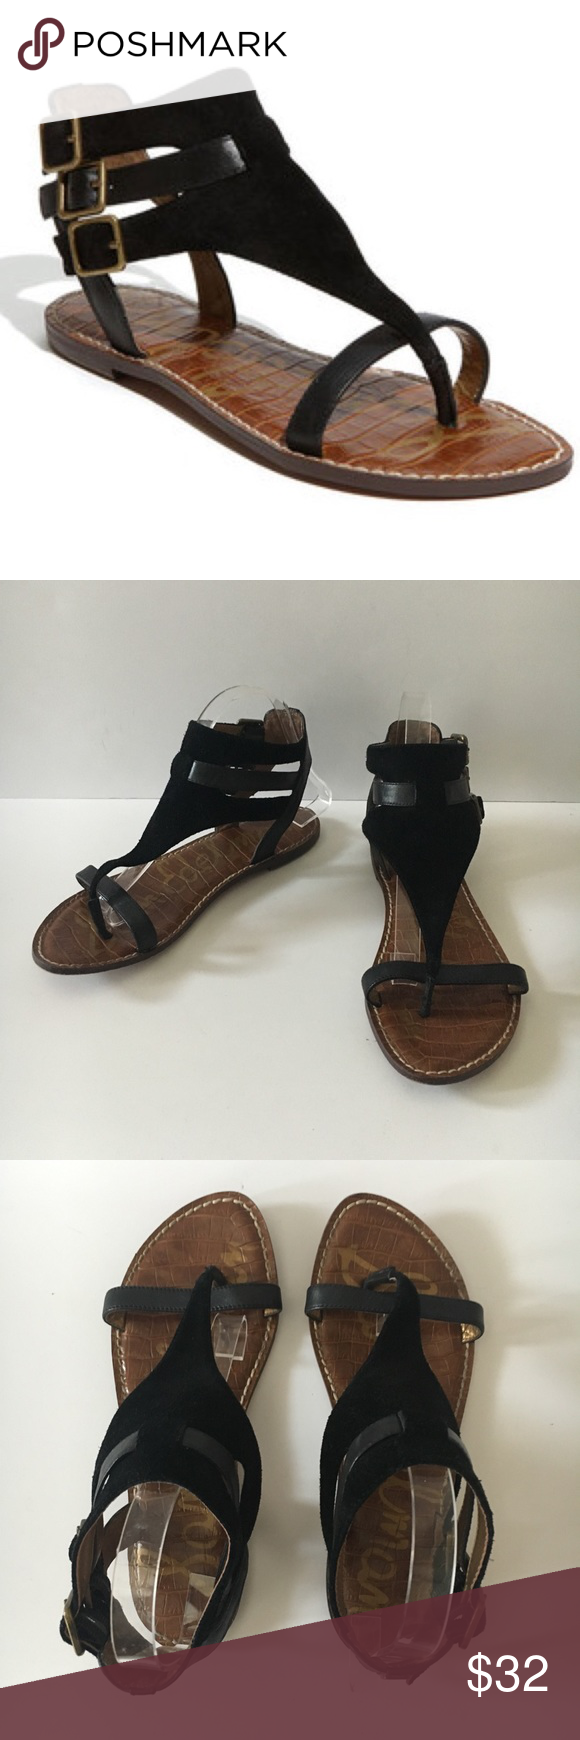 b0c19f70c5bb65 Sam Edelman Grenna Suede Leather Thong Sandals Size 8M in very good  preowned condition -Measure